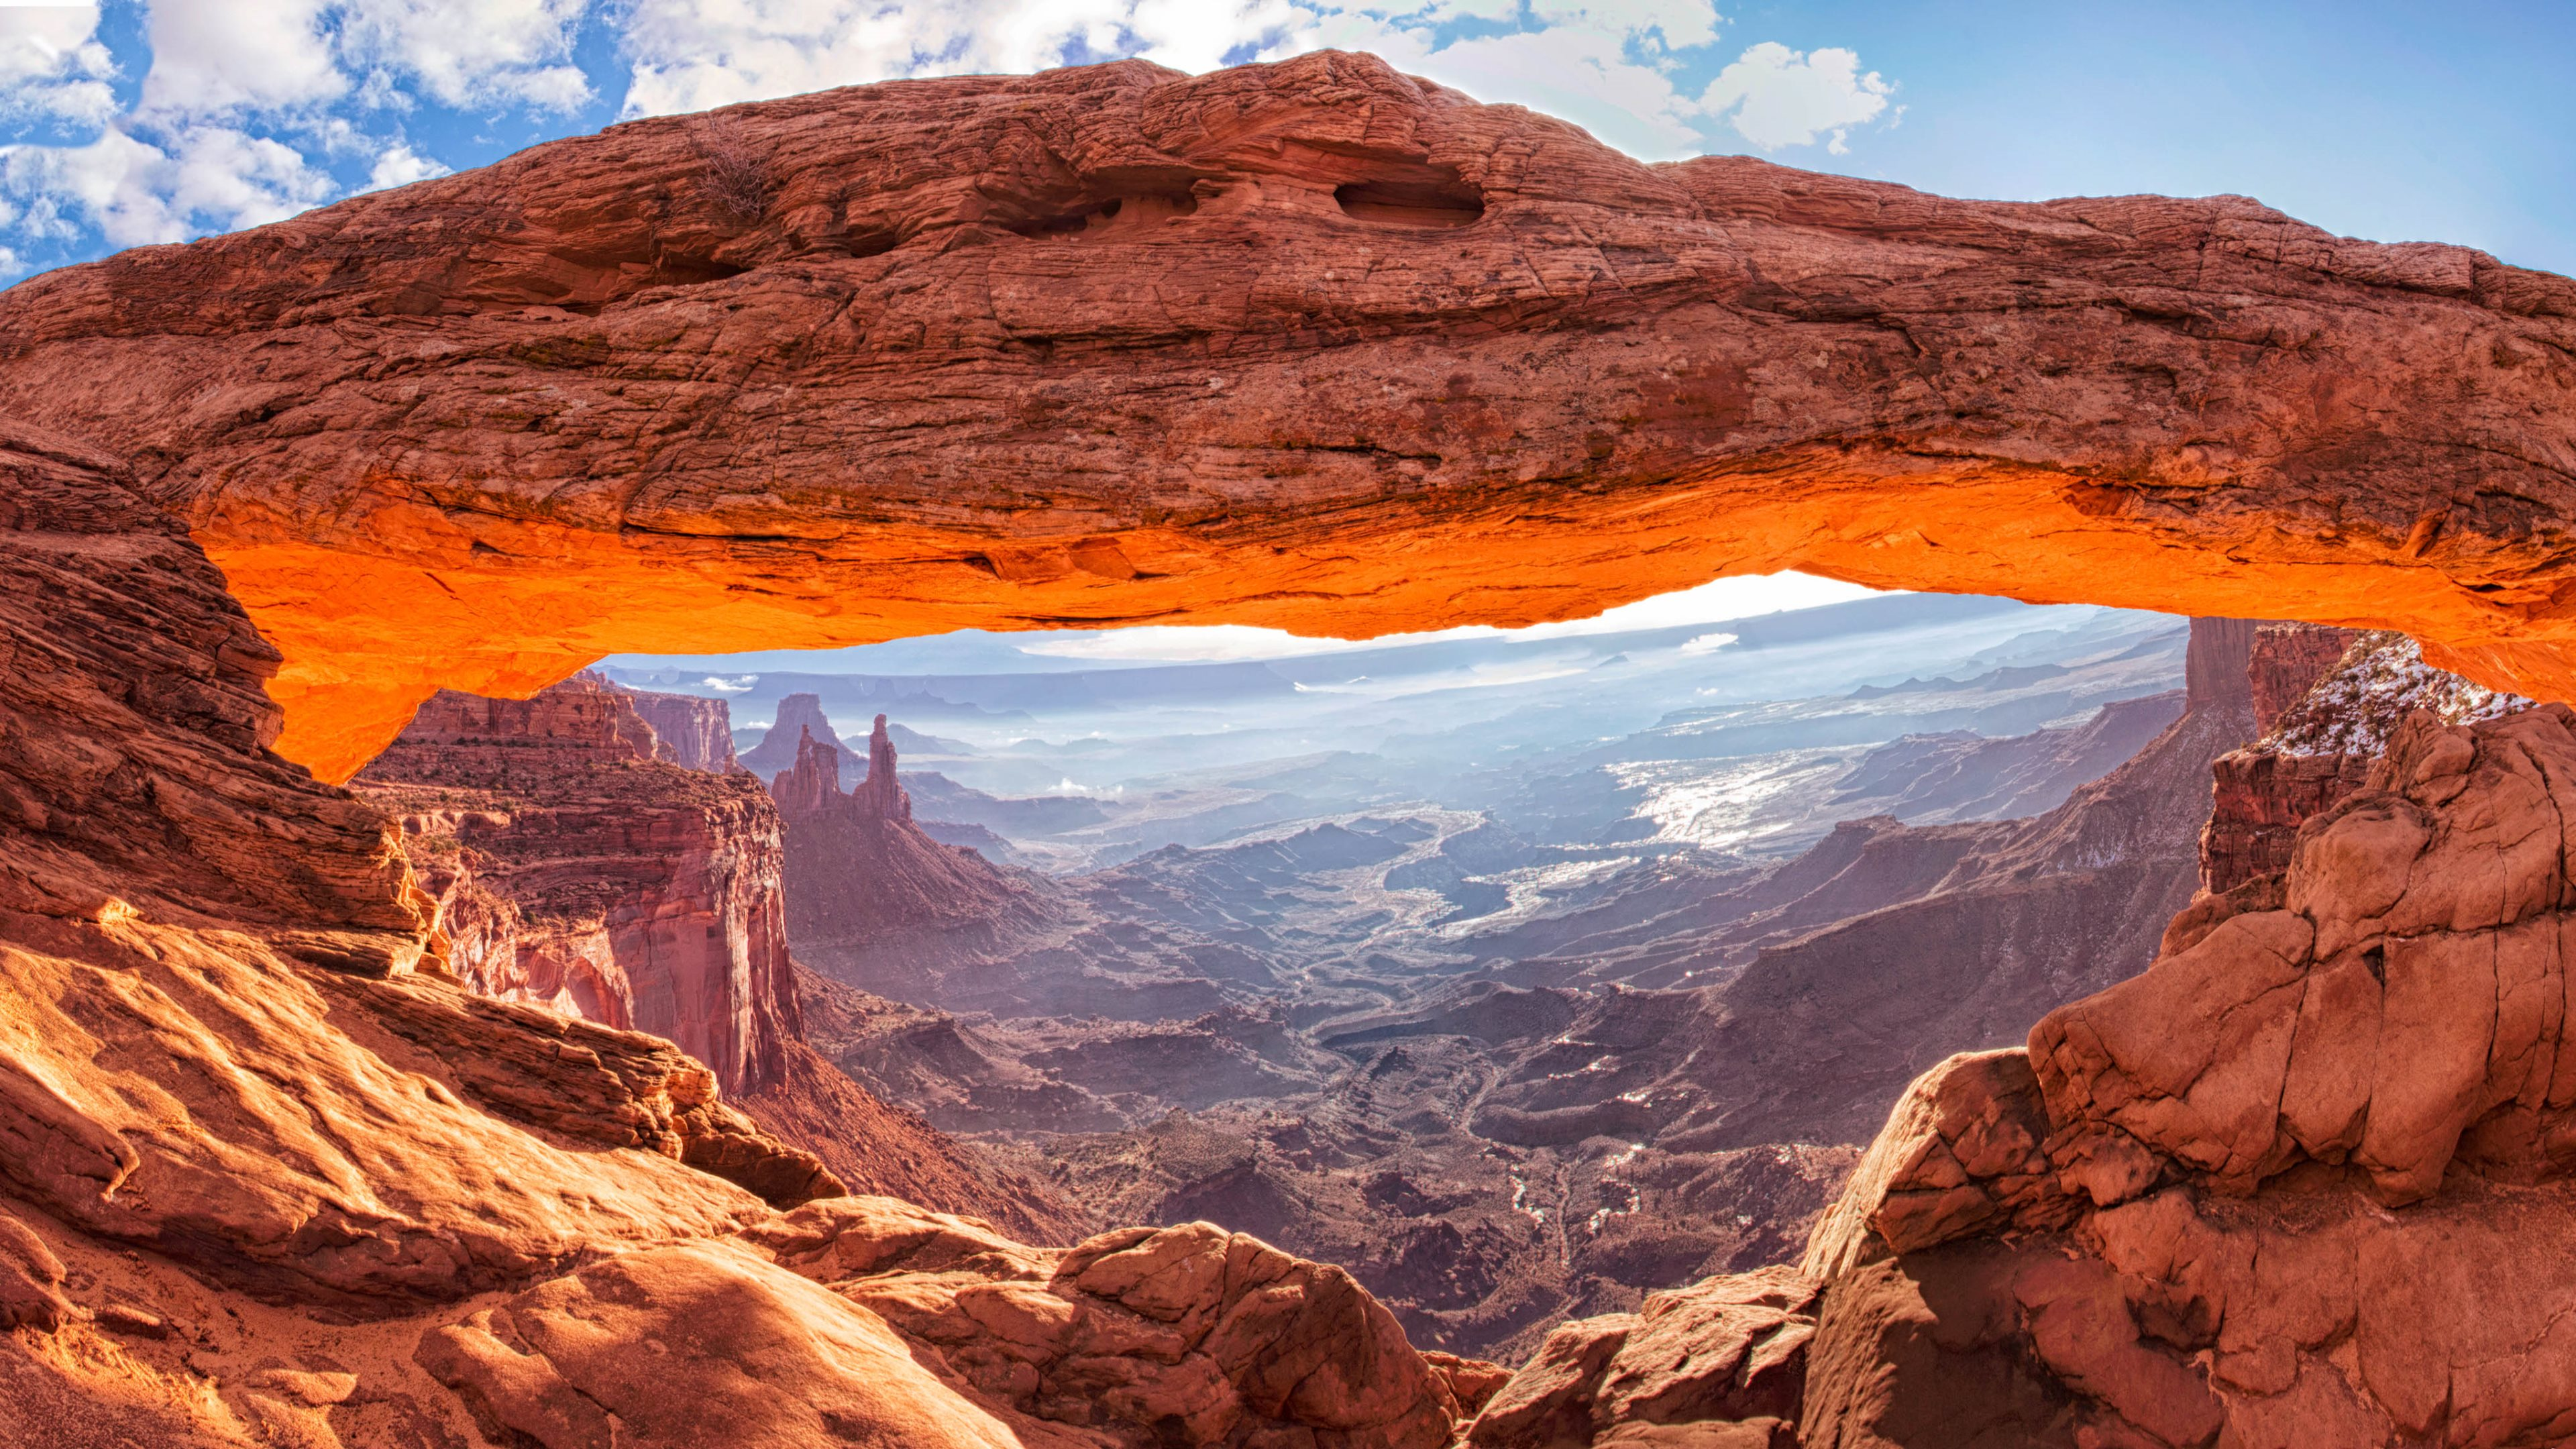 The Mesa Arch in Canyonlands National Park Moab Utah USA 3840x2160